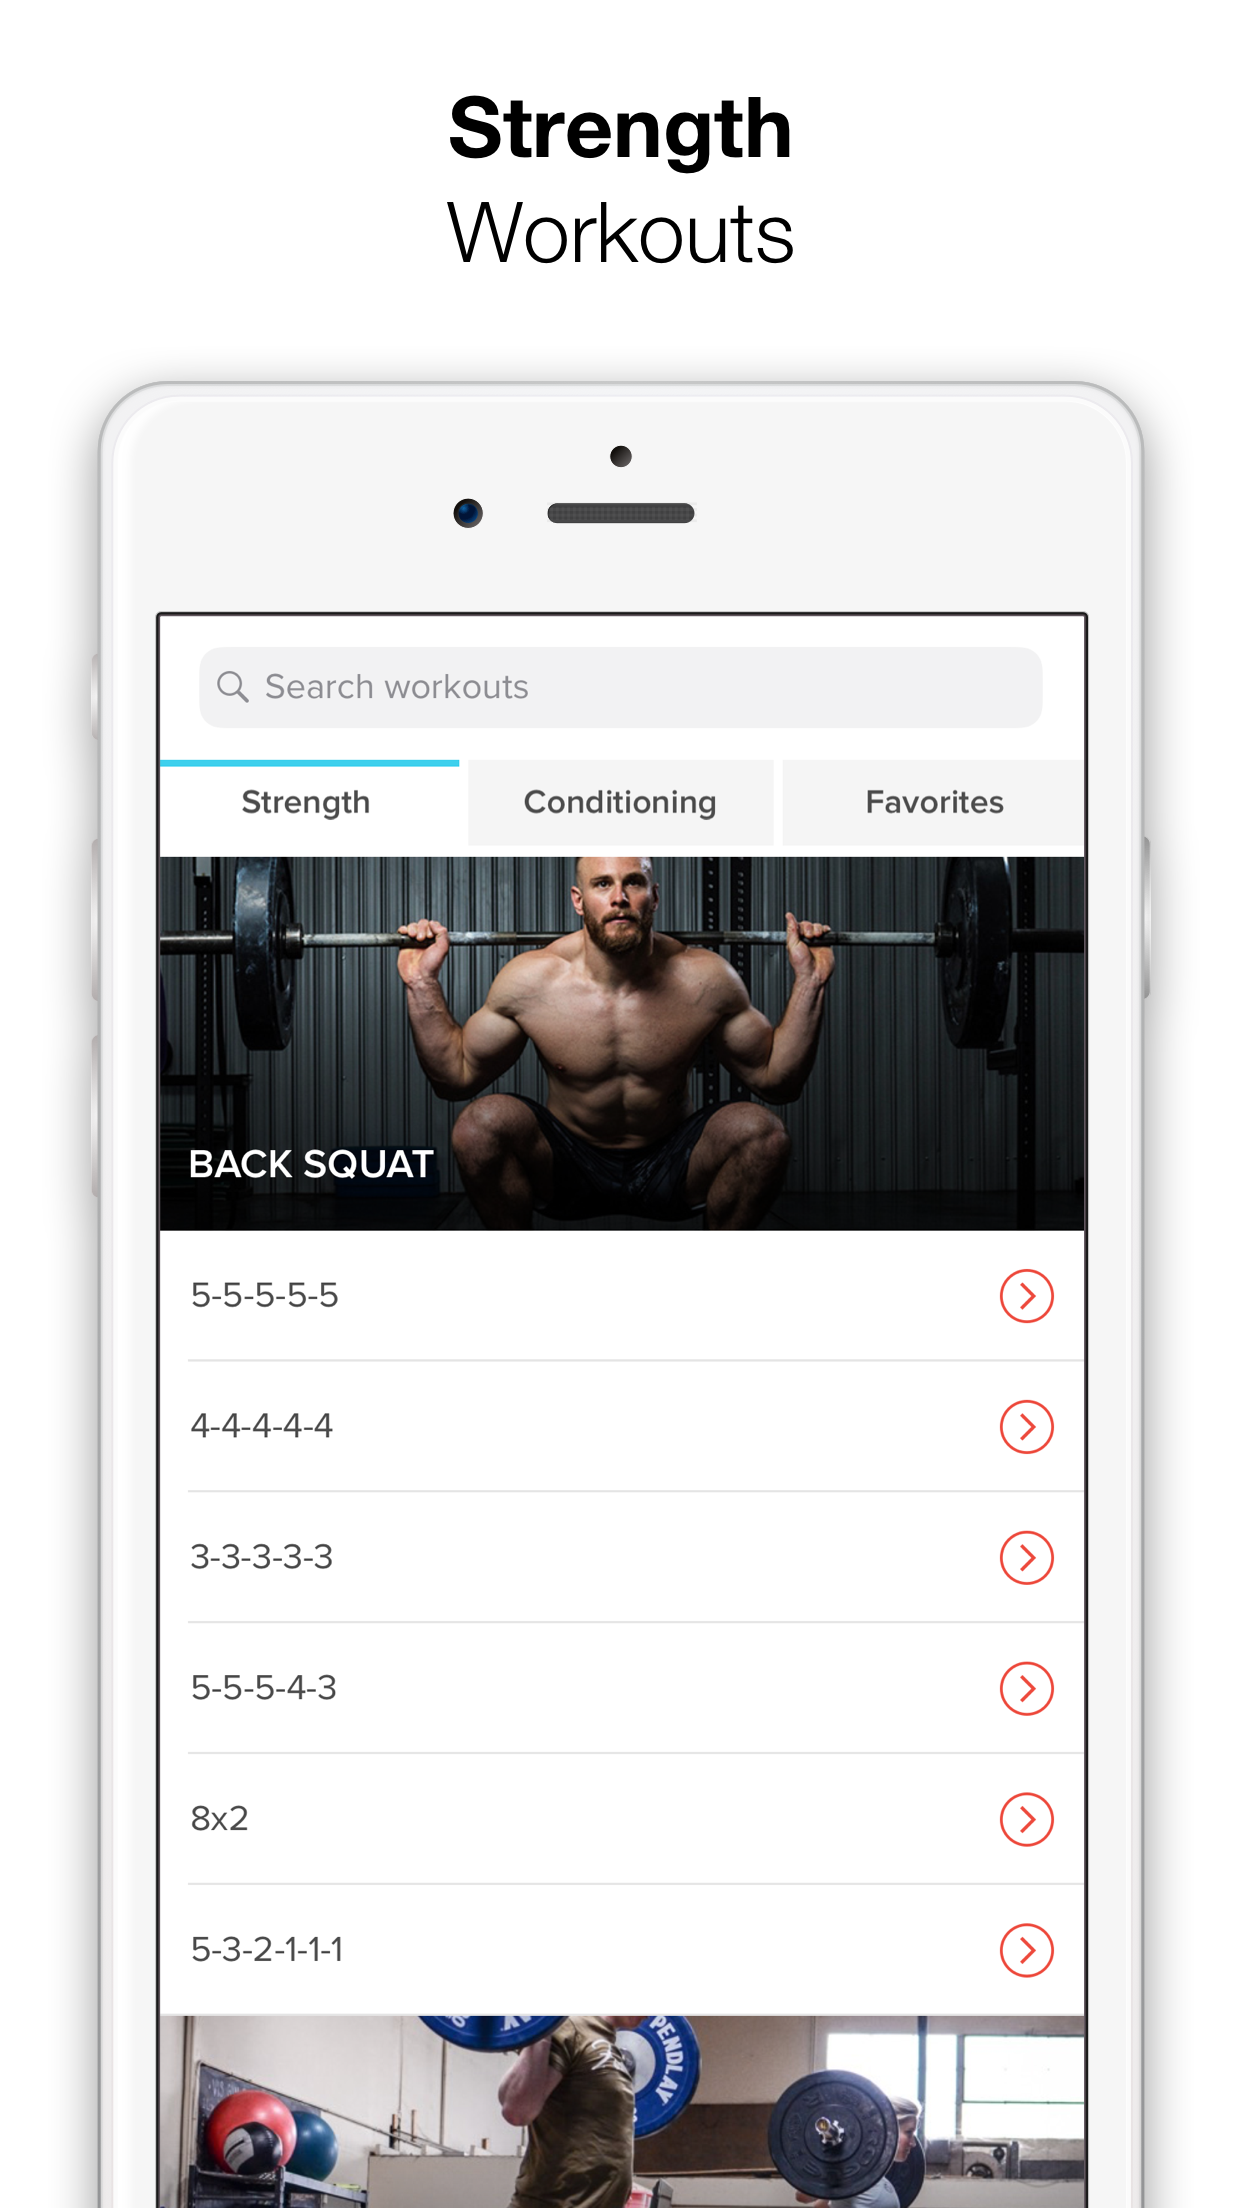 Keelo - Strength HIIT Workouts Screenshot